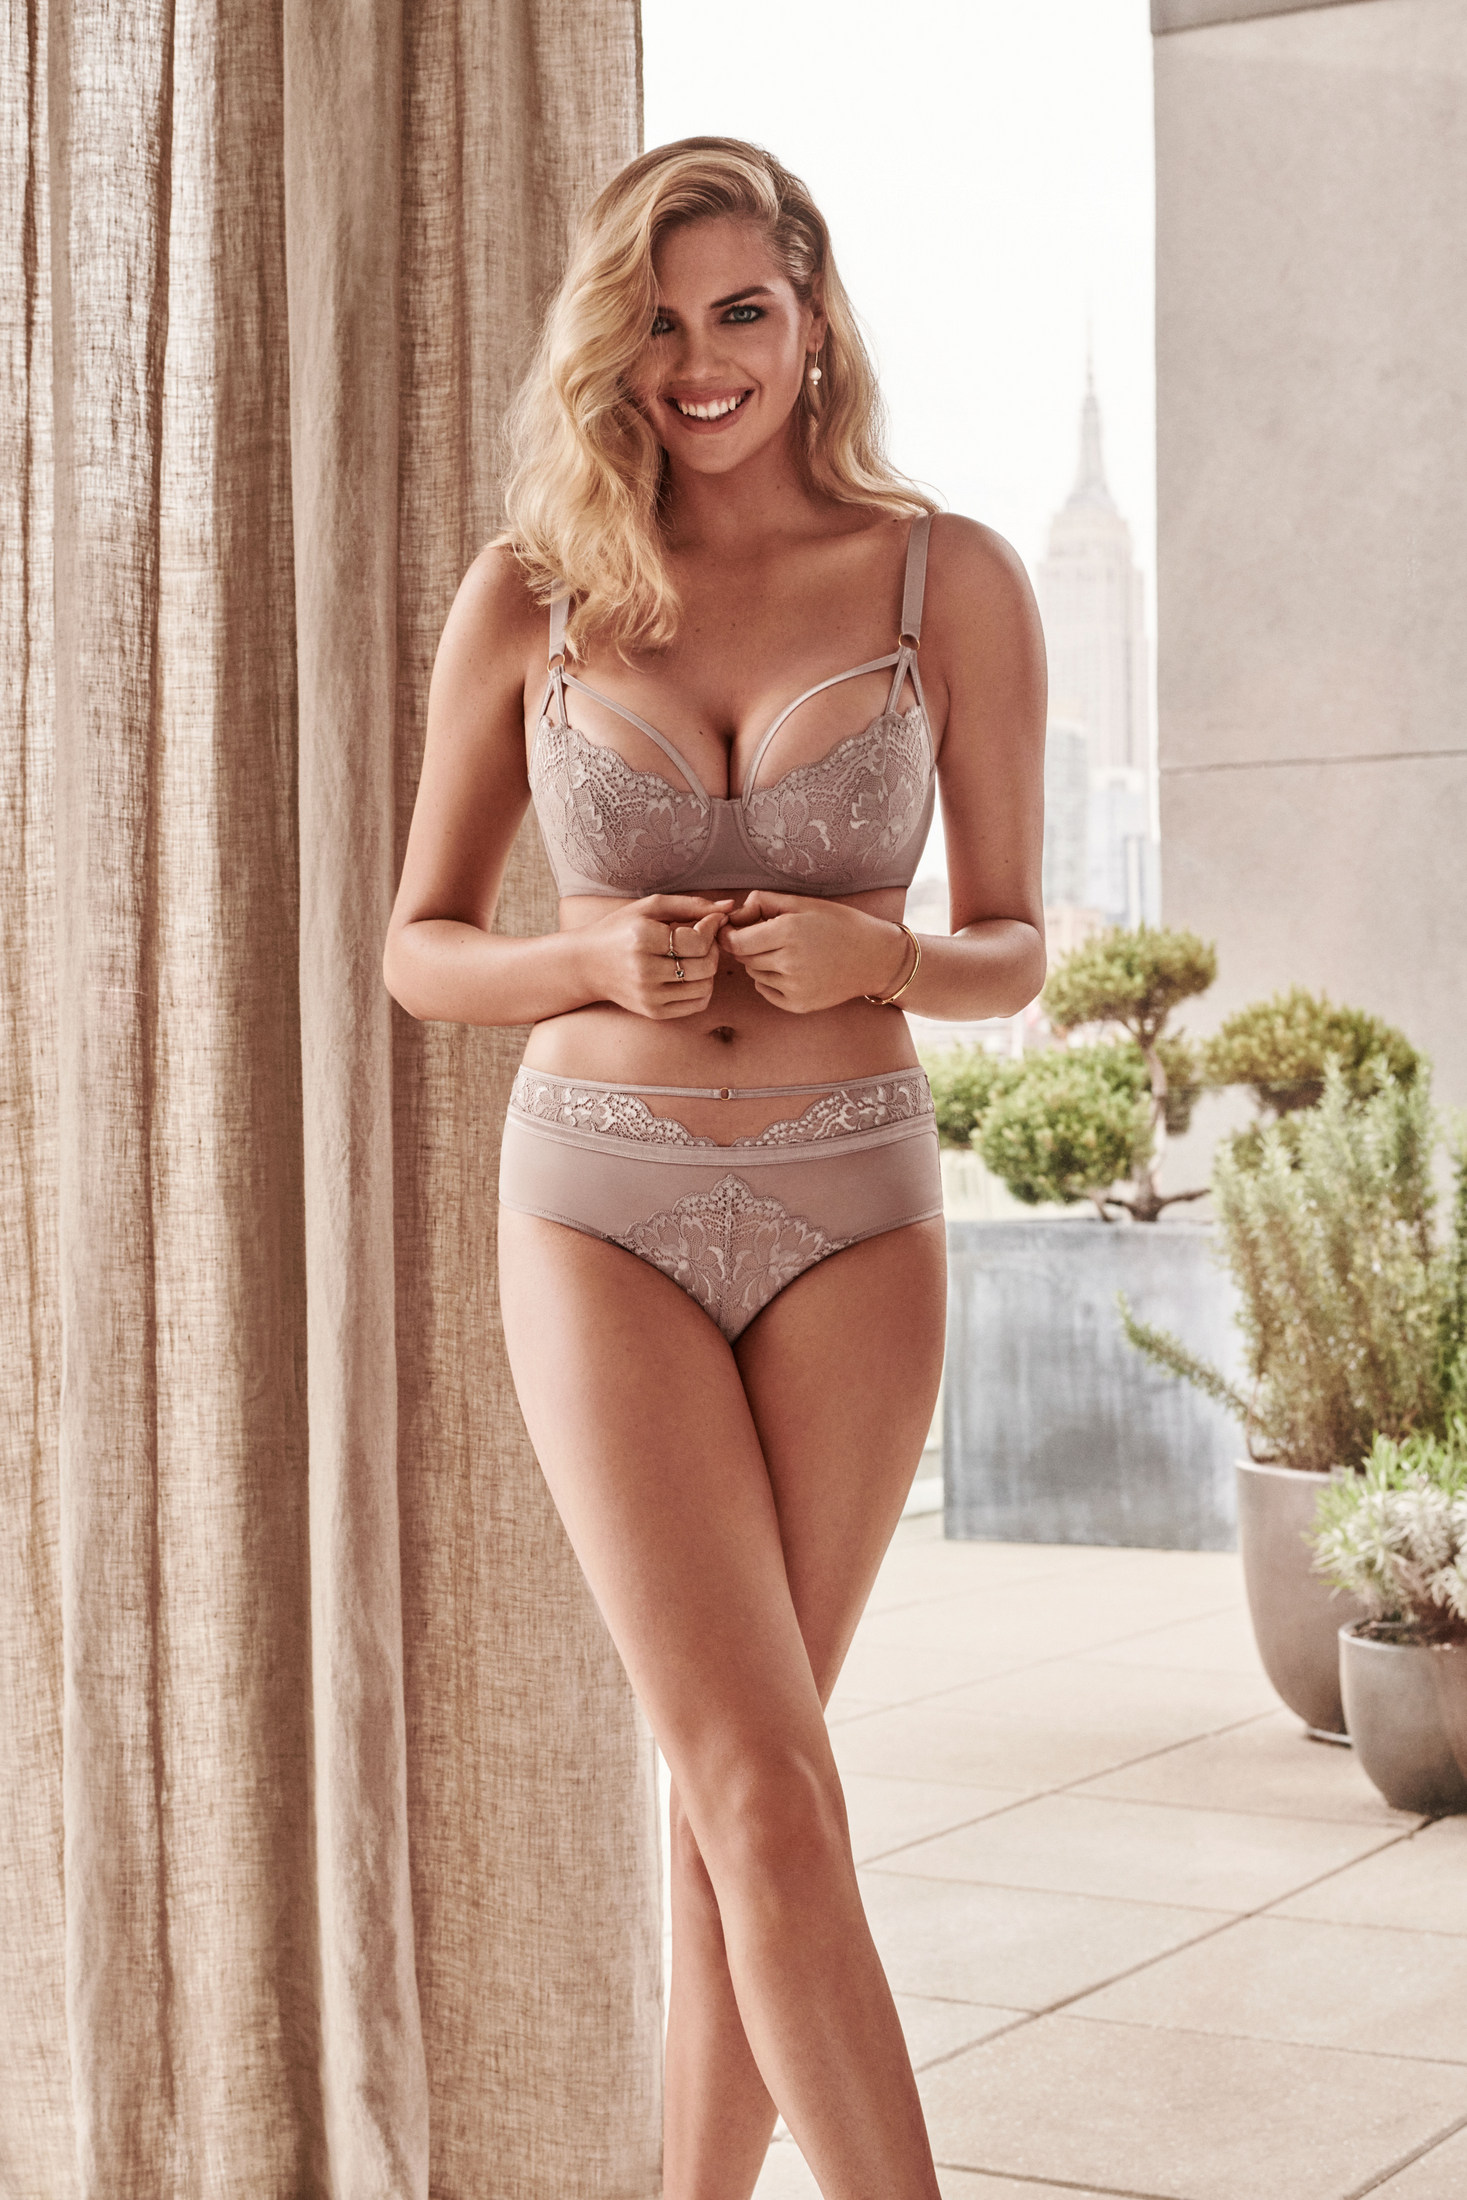 Kate Upton - Yamamay Lingerie (August 2018)